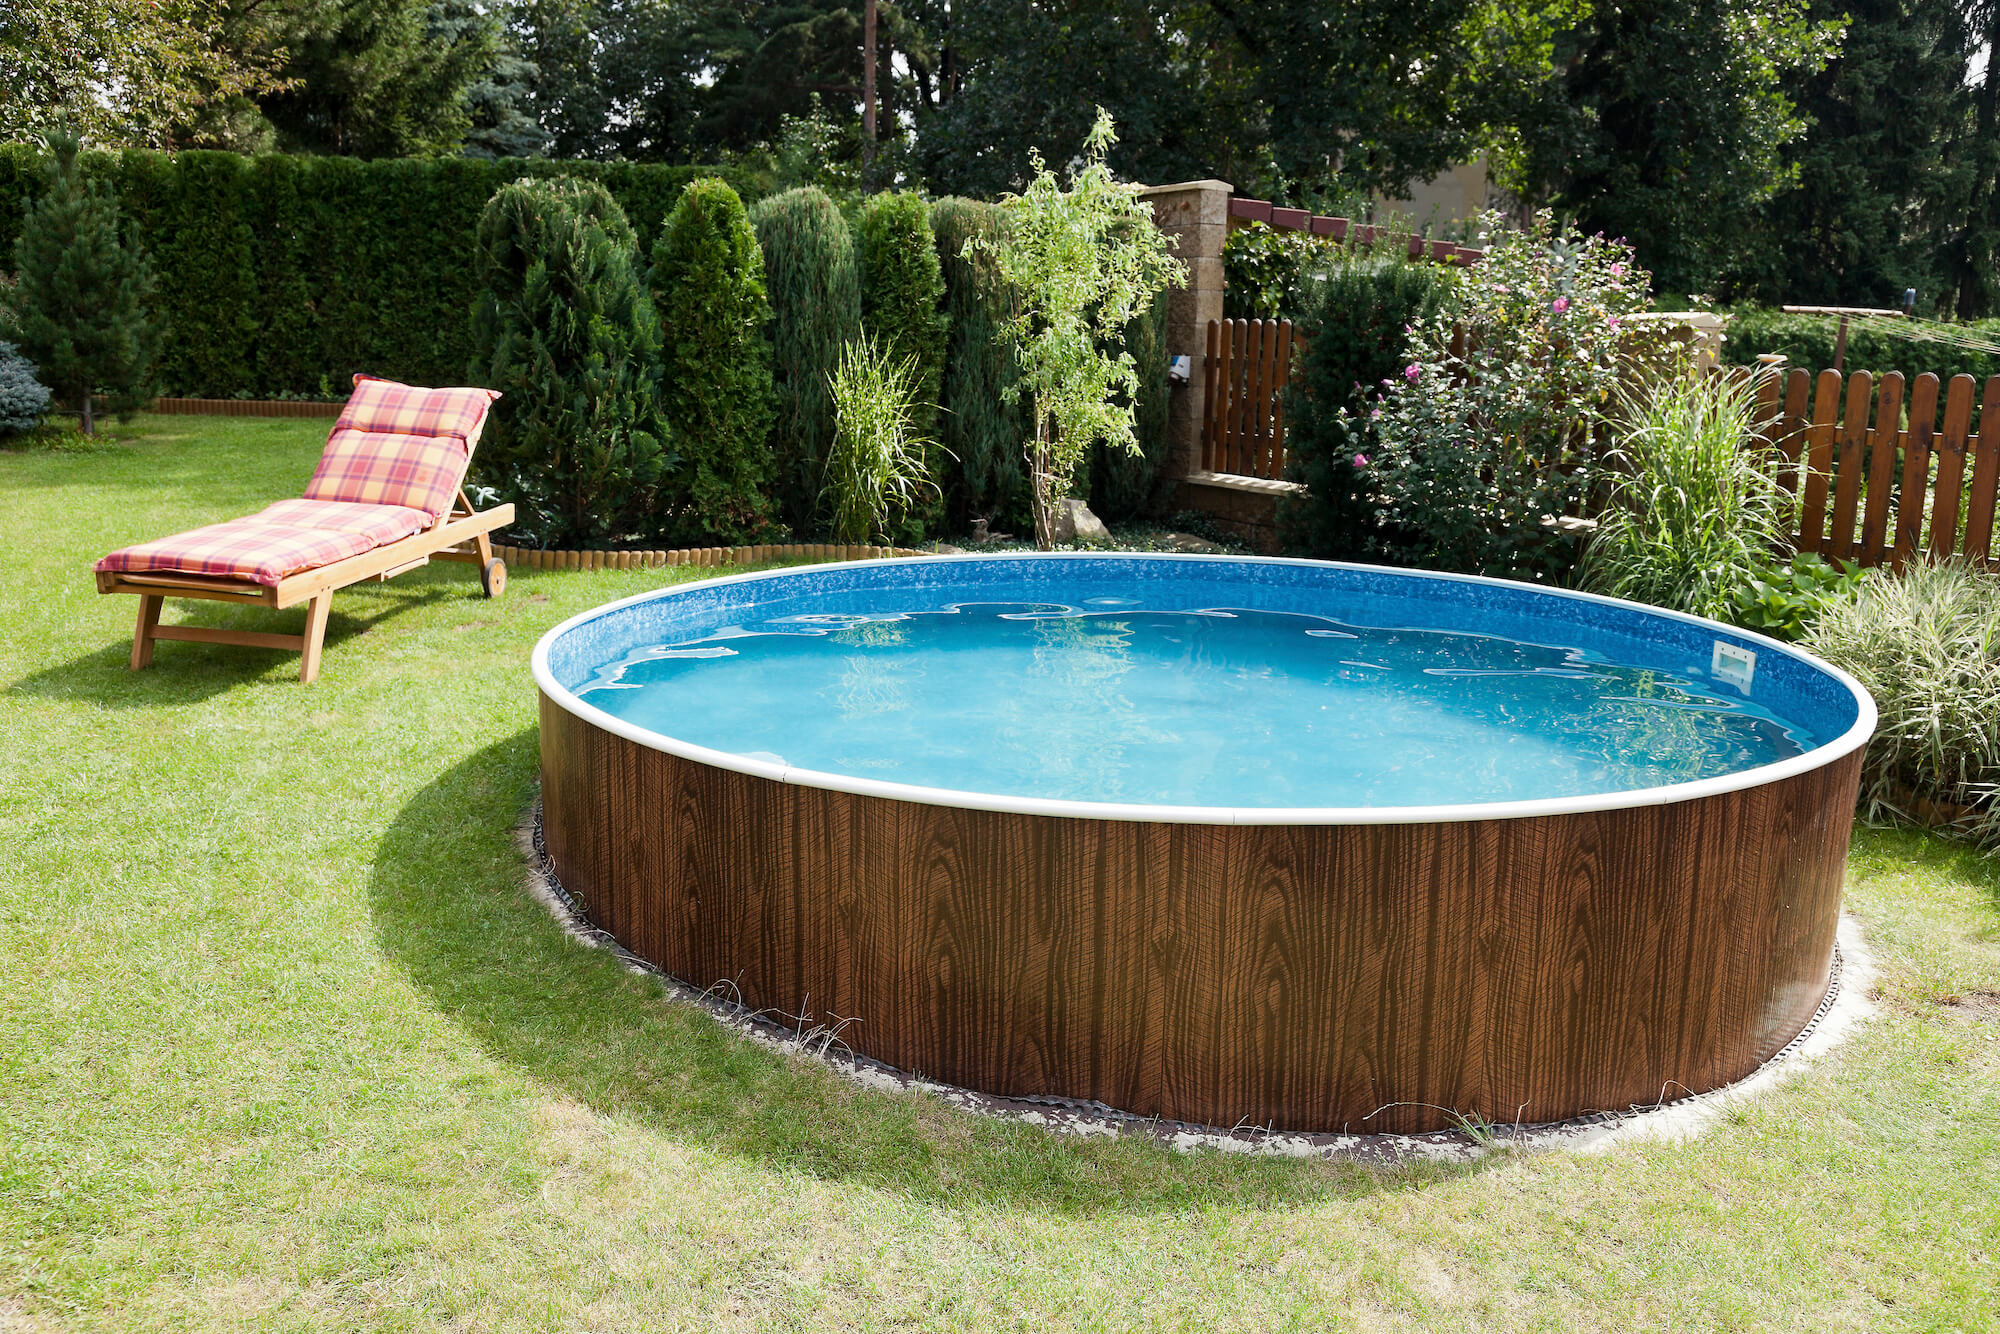 Above ground pools for sale online uk 1st direct for Buying an above ground pool guide